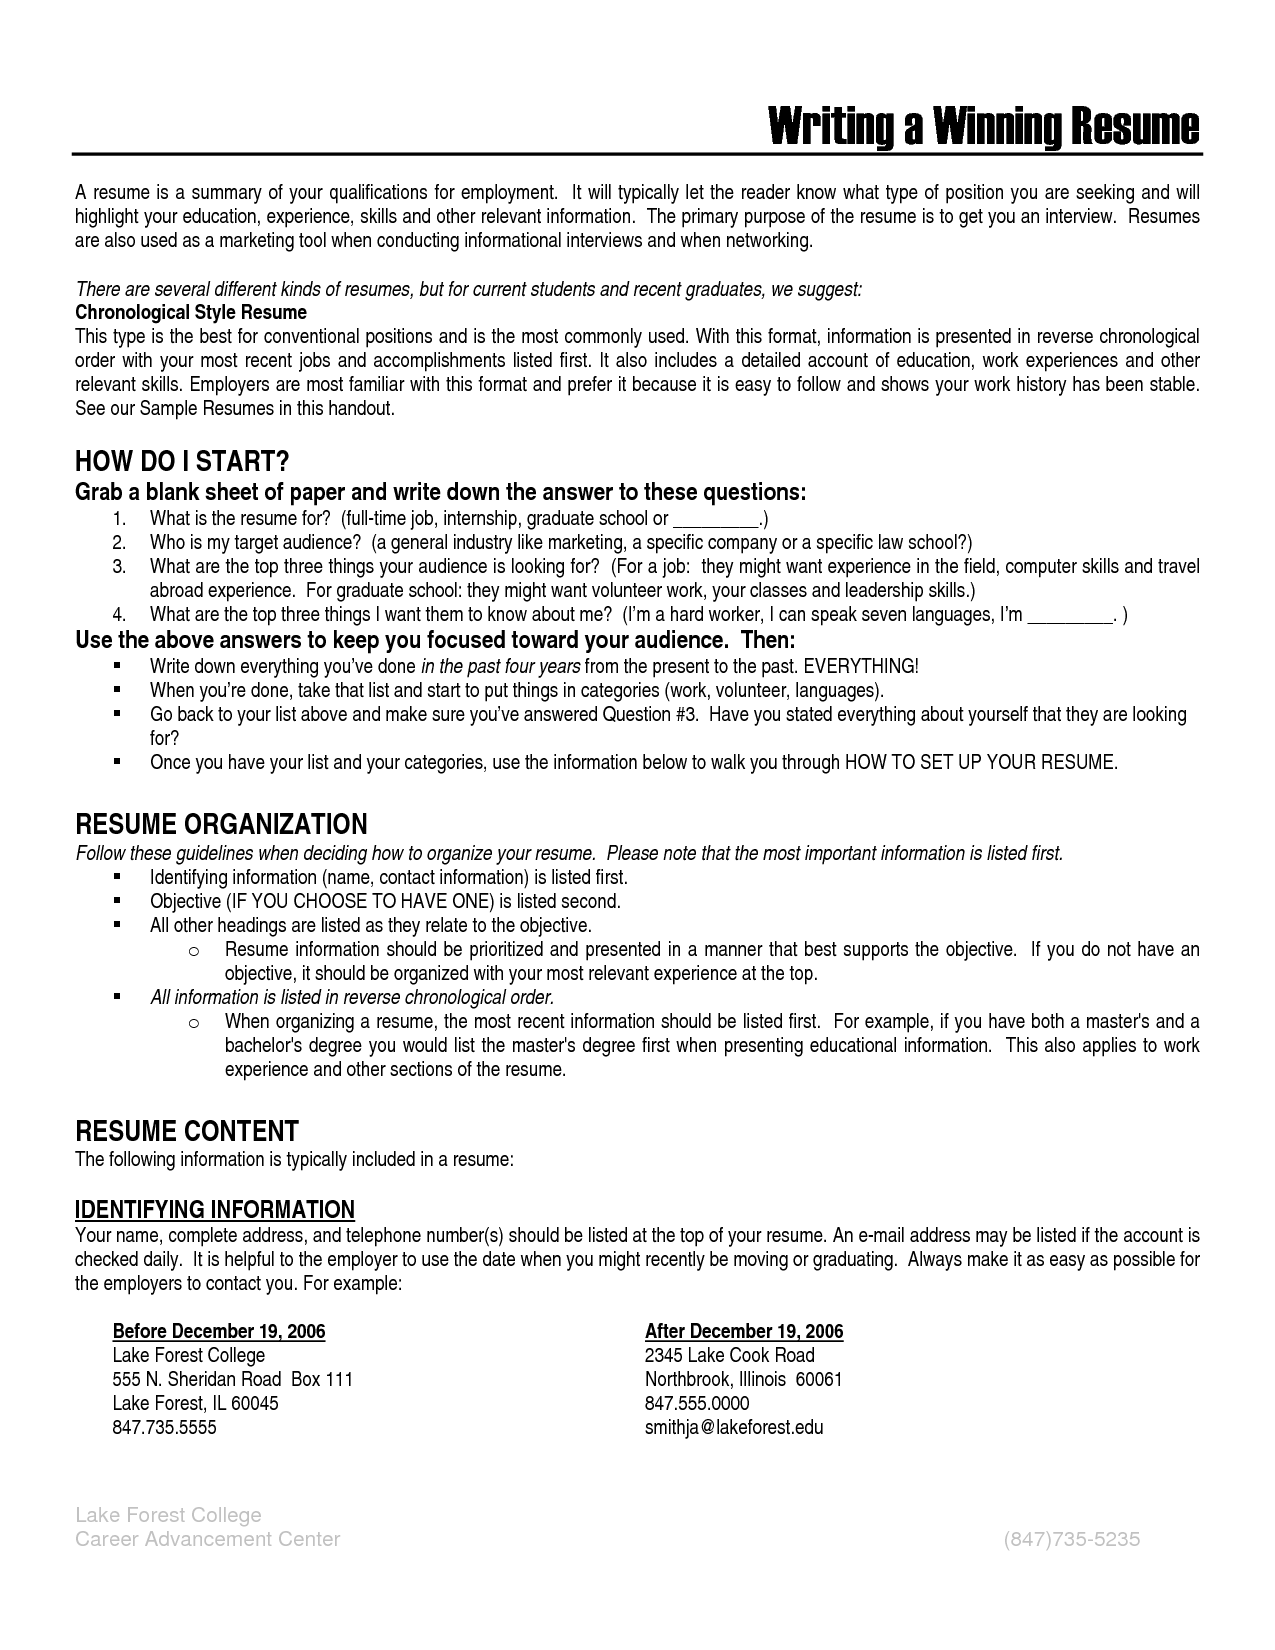 cv career history ordervolunteer work on resume application letter sample